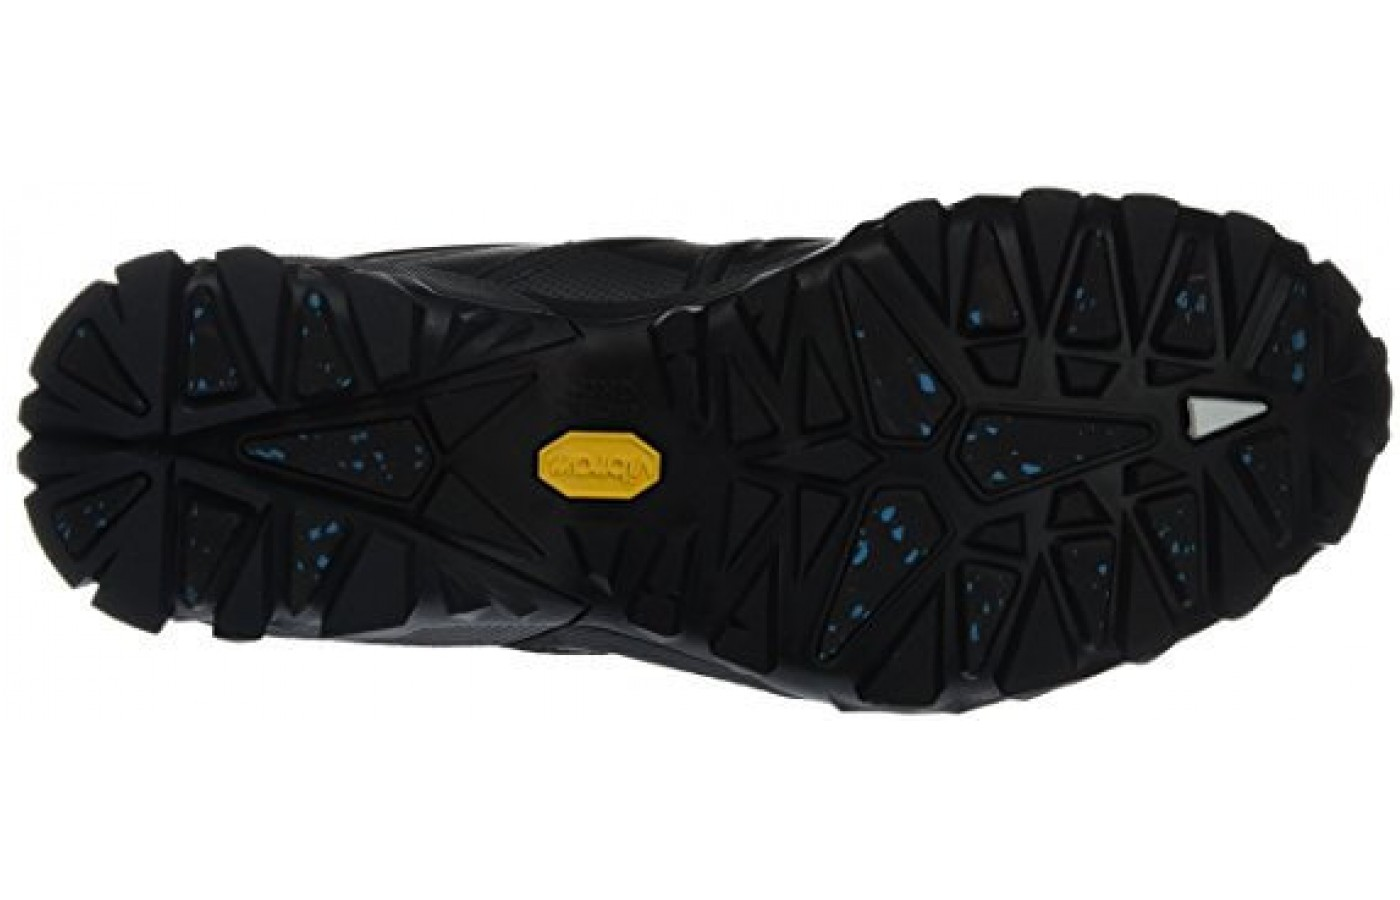 The Merrell Capra Glacial Ice grippy sole for winter terrain